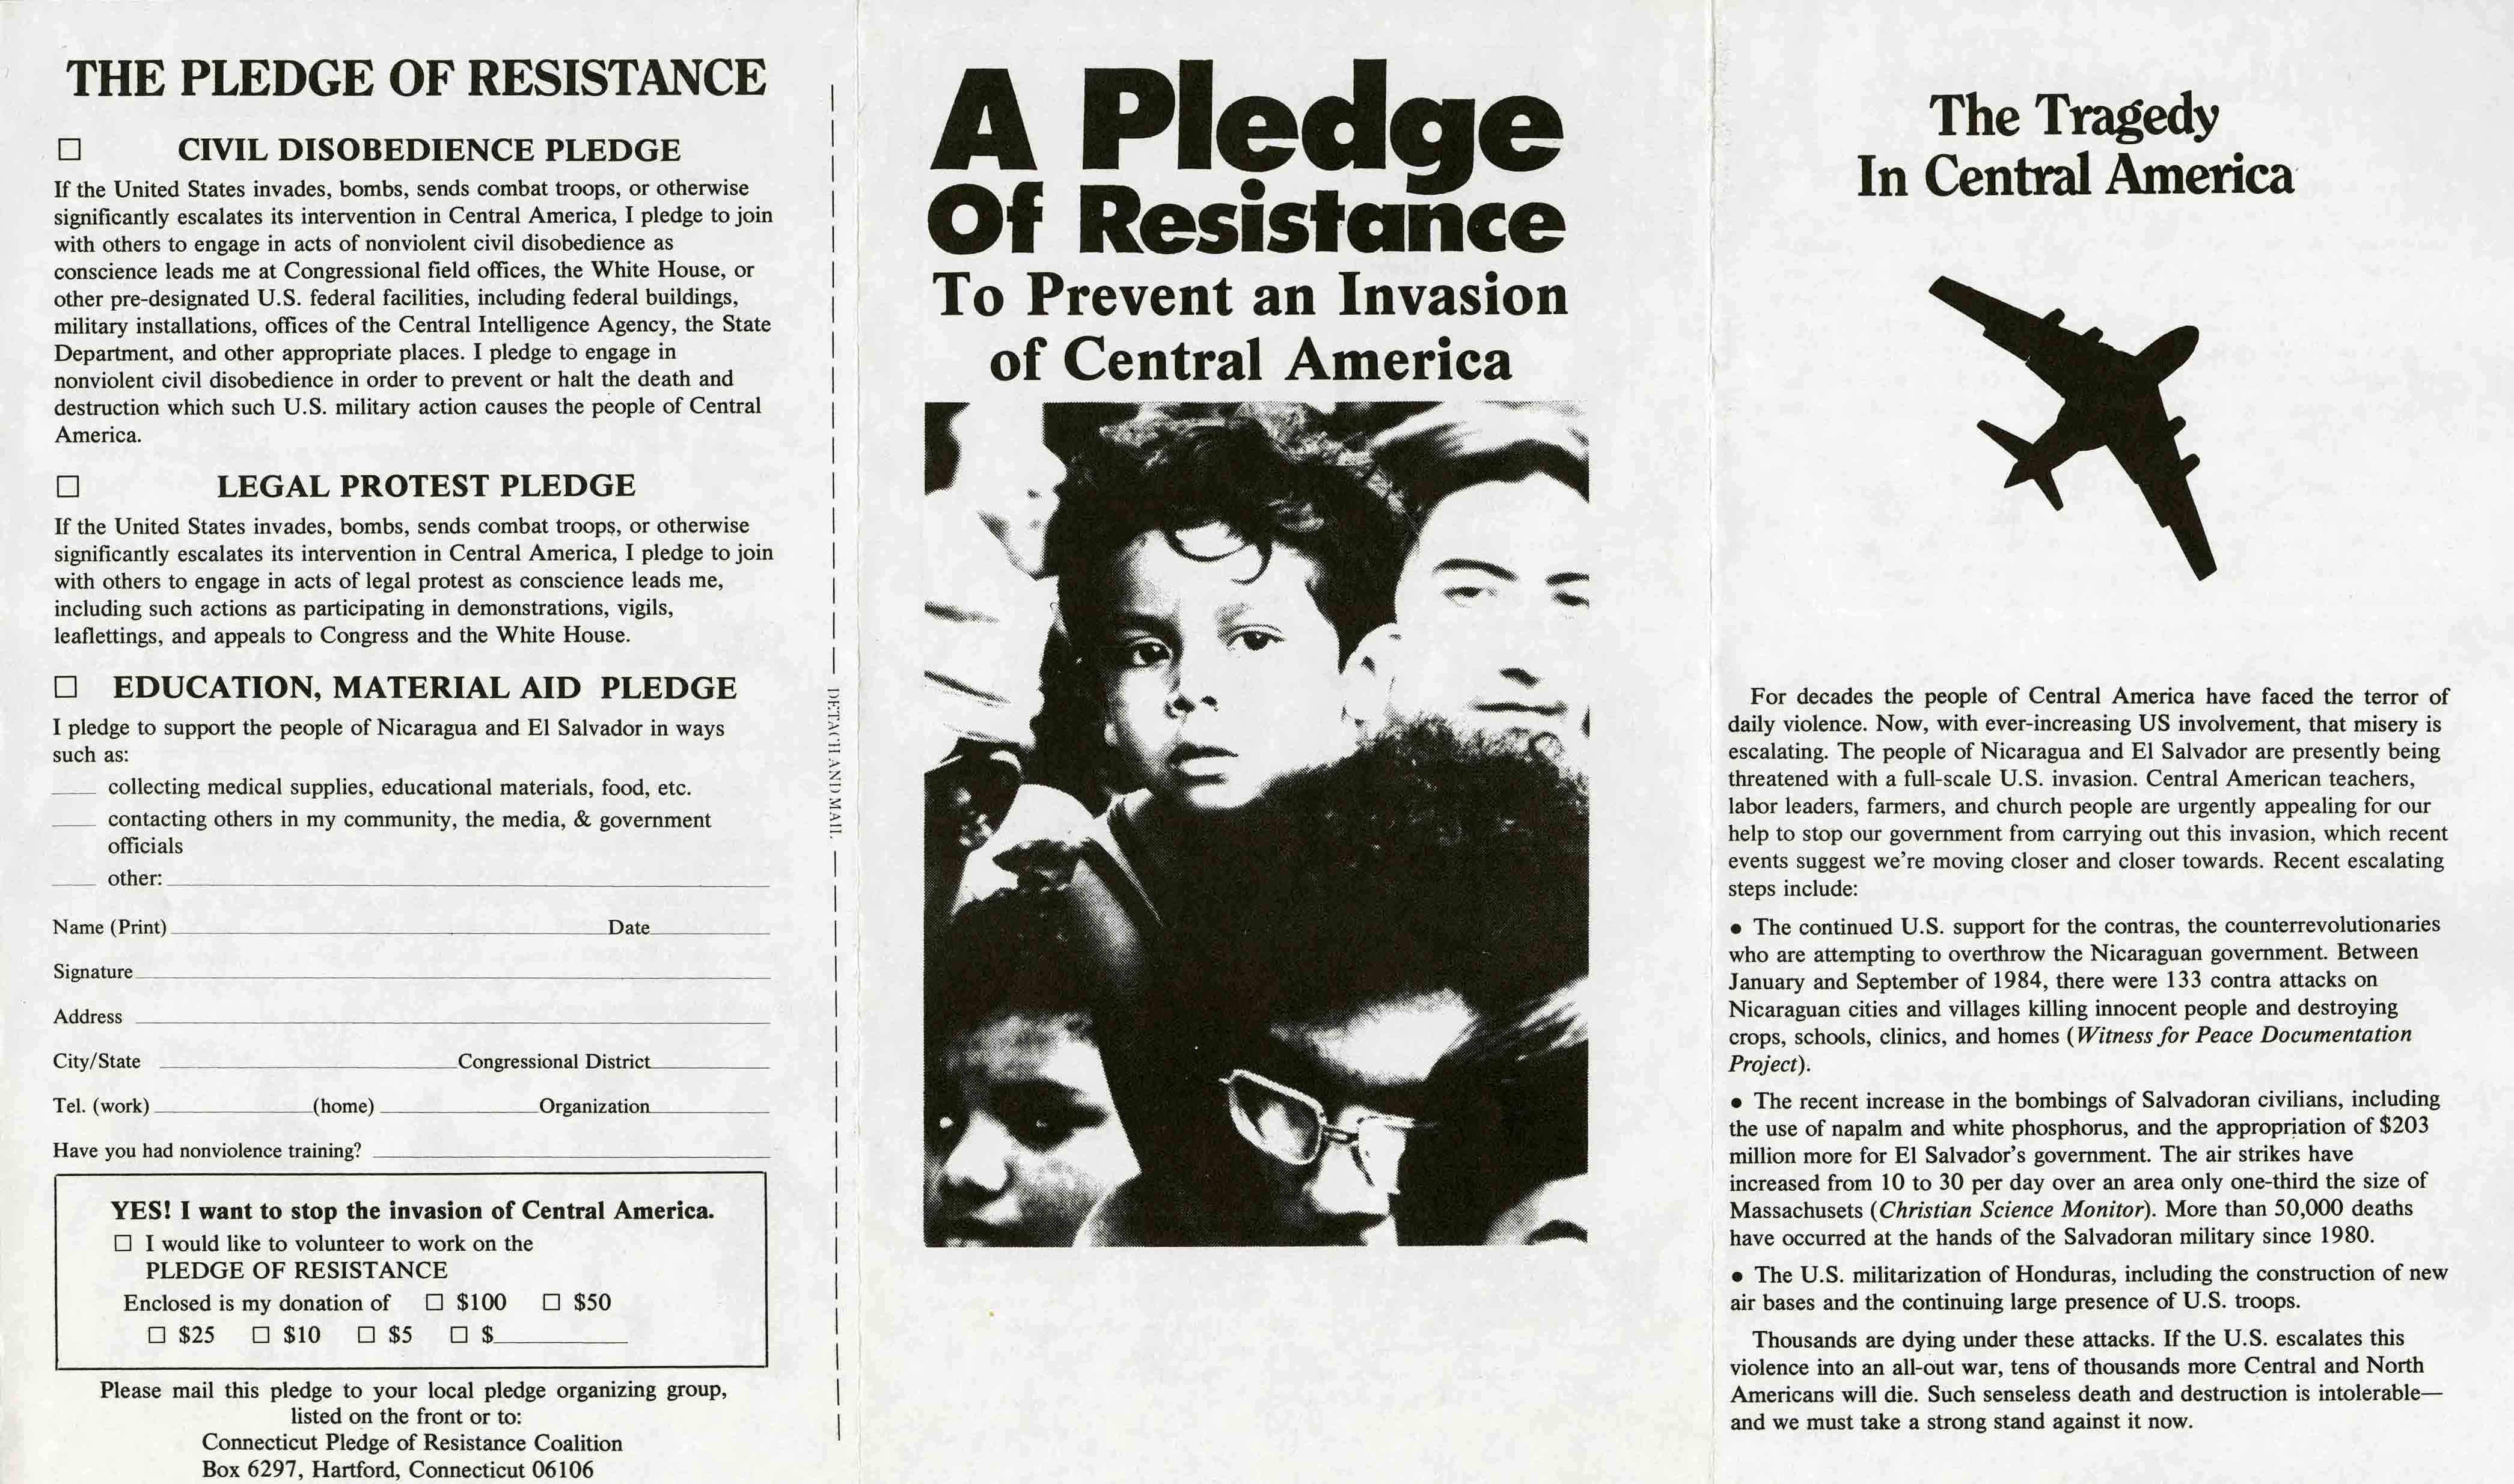 uconn_asc_1992-0001_Connecticut-Pledge-of-Resistance_002